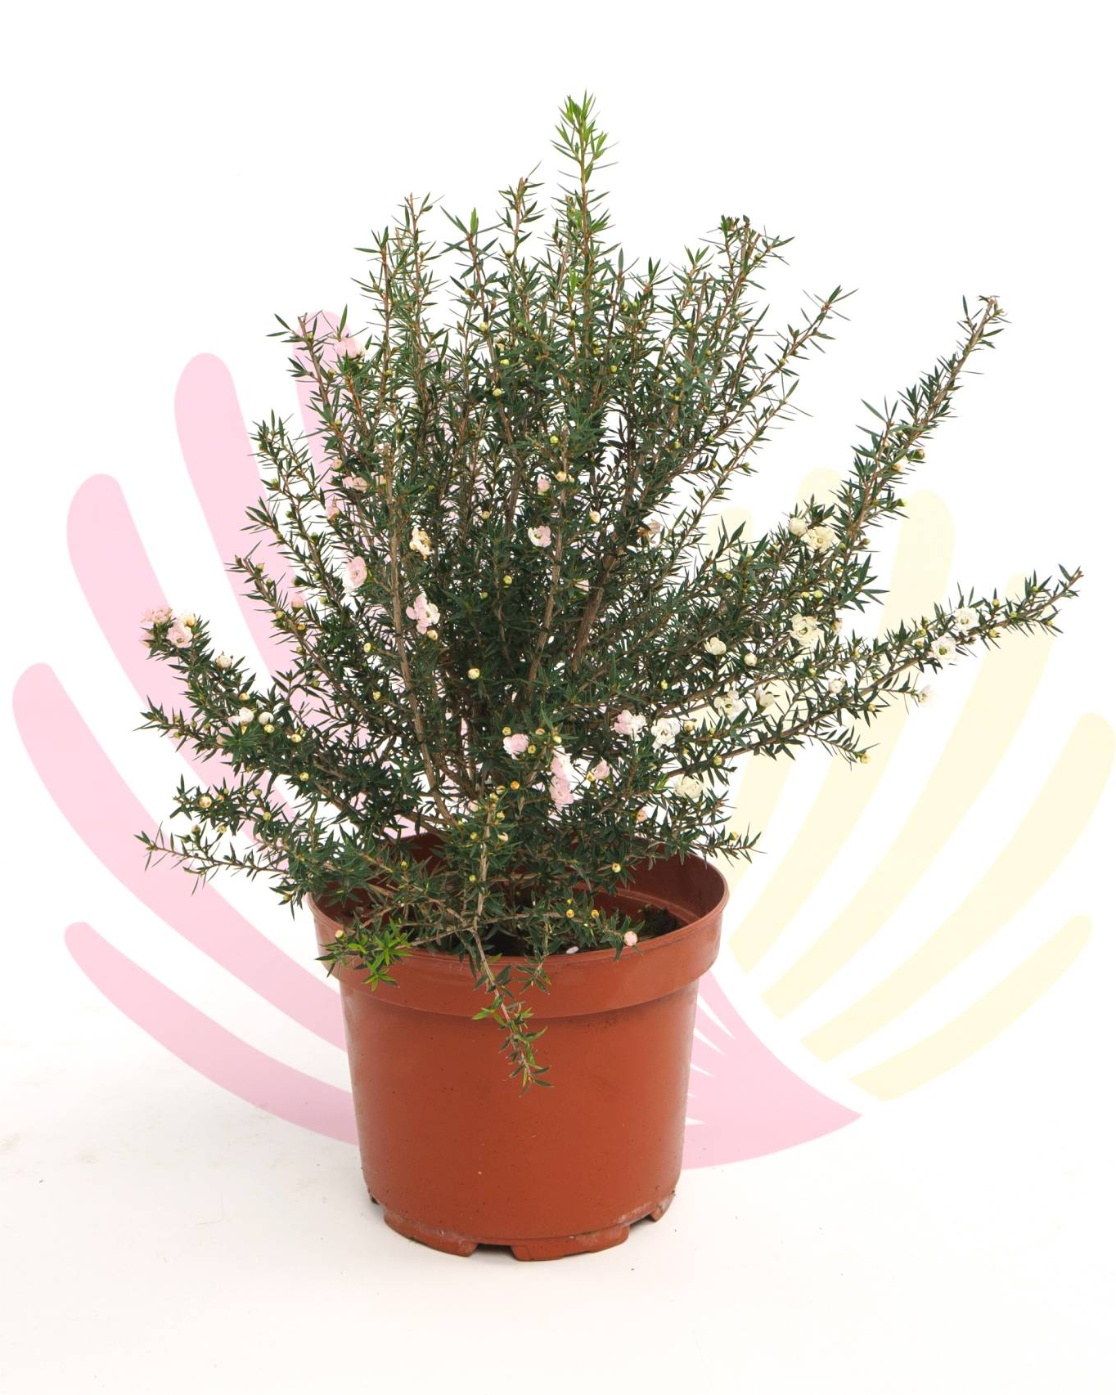 Leptospermum scoparium White